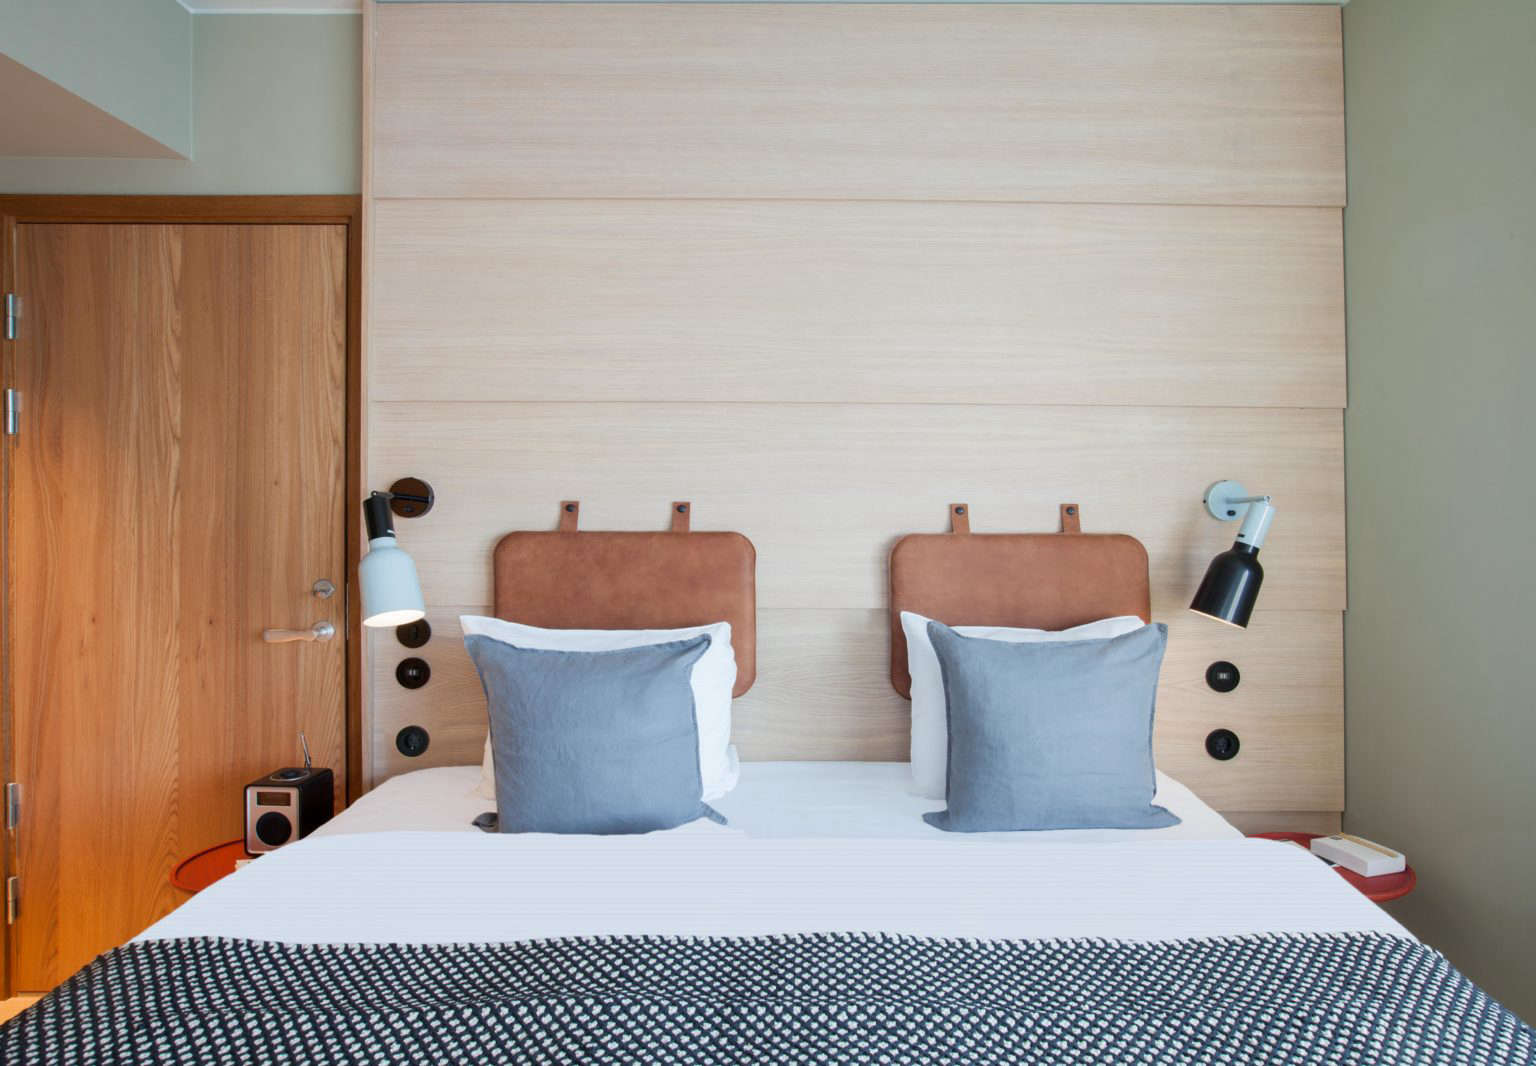 Leather headboard, Hobo Hotel Stockholm designed by Studio Aisslinger. Patricia Parinejad photo.